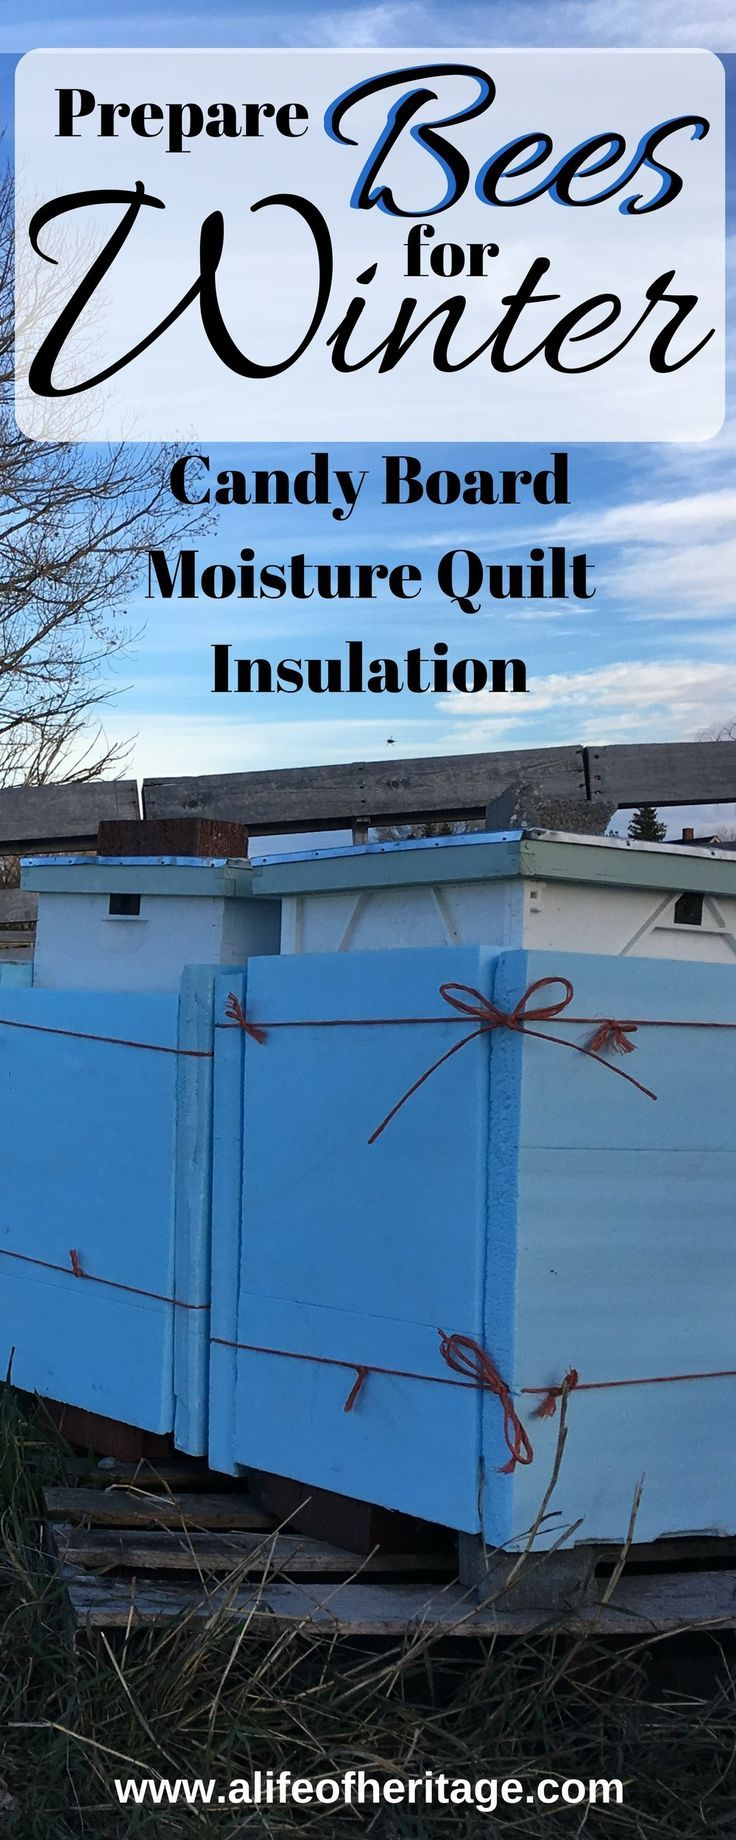 Bees in Winter: Do you have really cold, wet winters? Then consider making a candy board, moisture quilt and wrapping your hive with insulation!